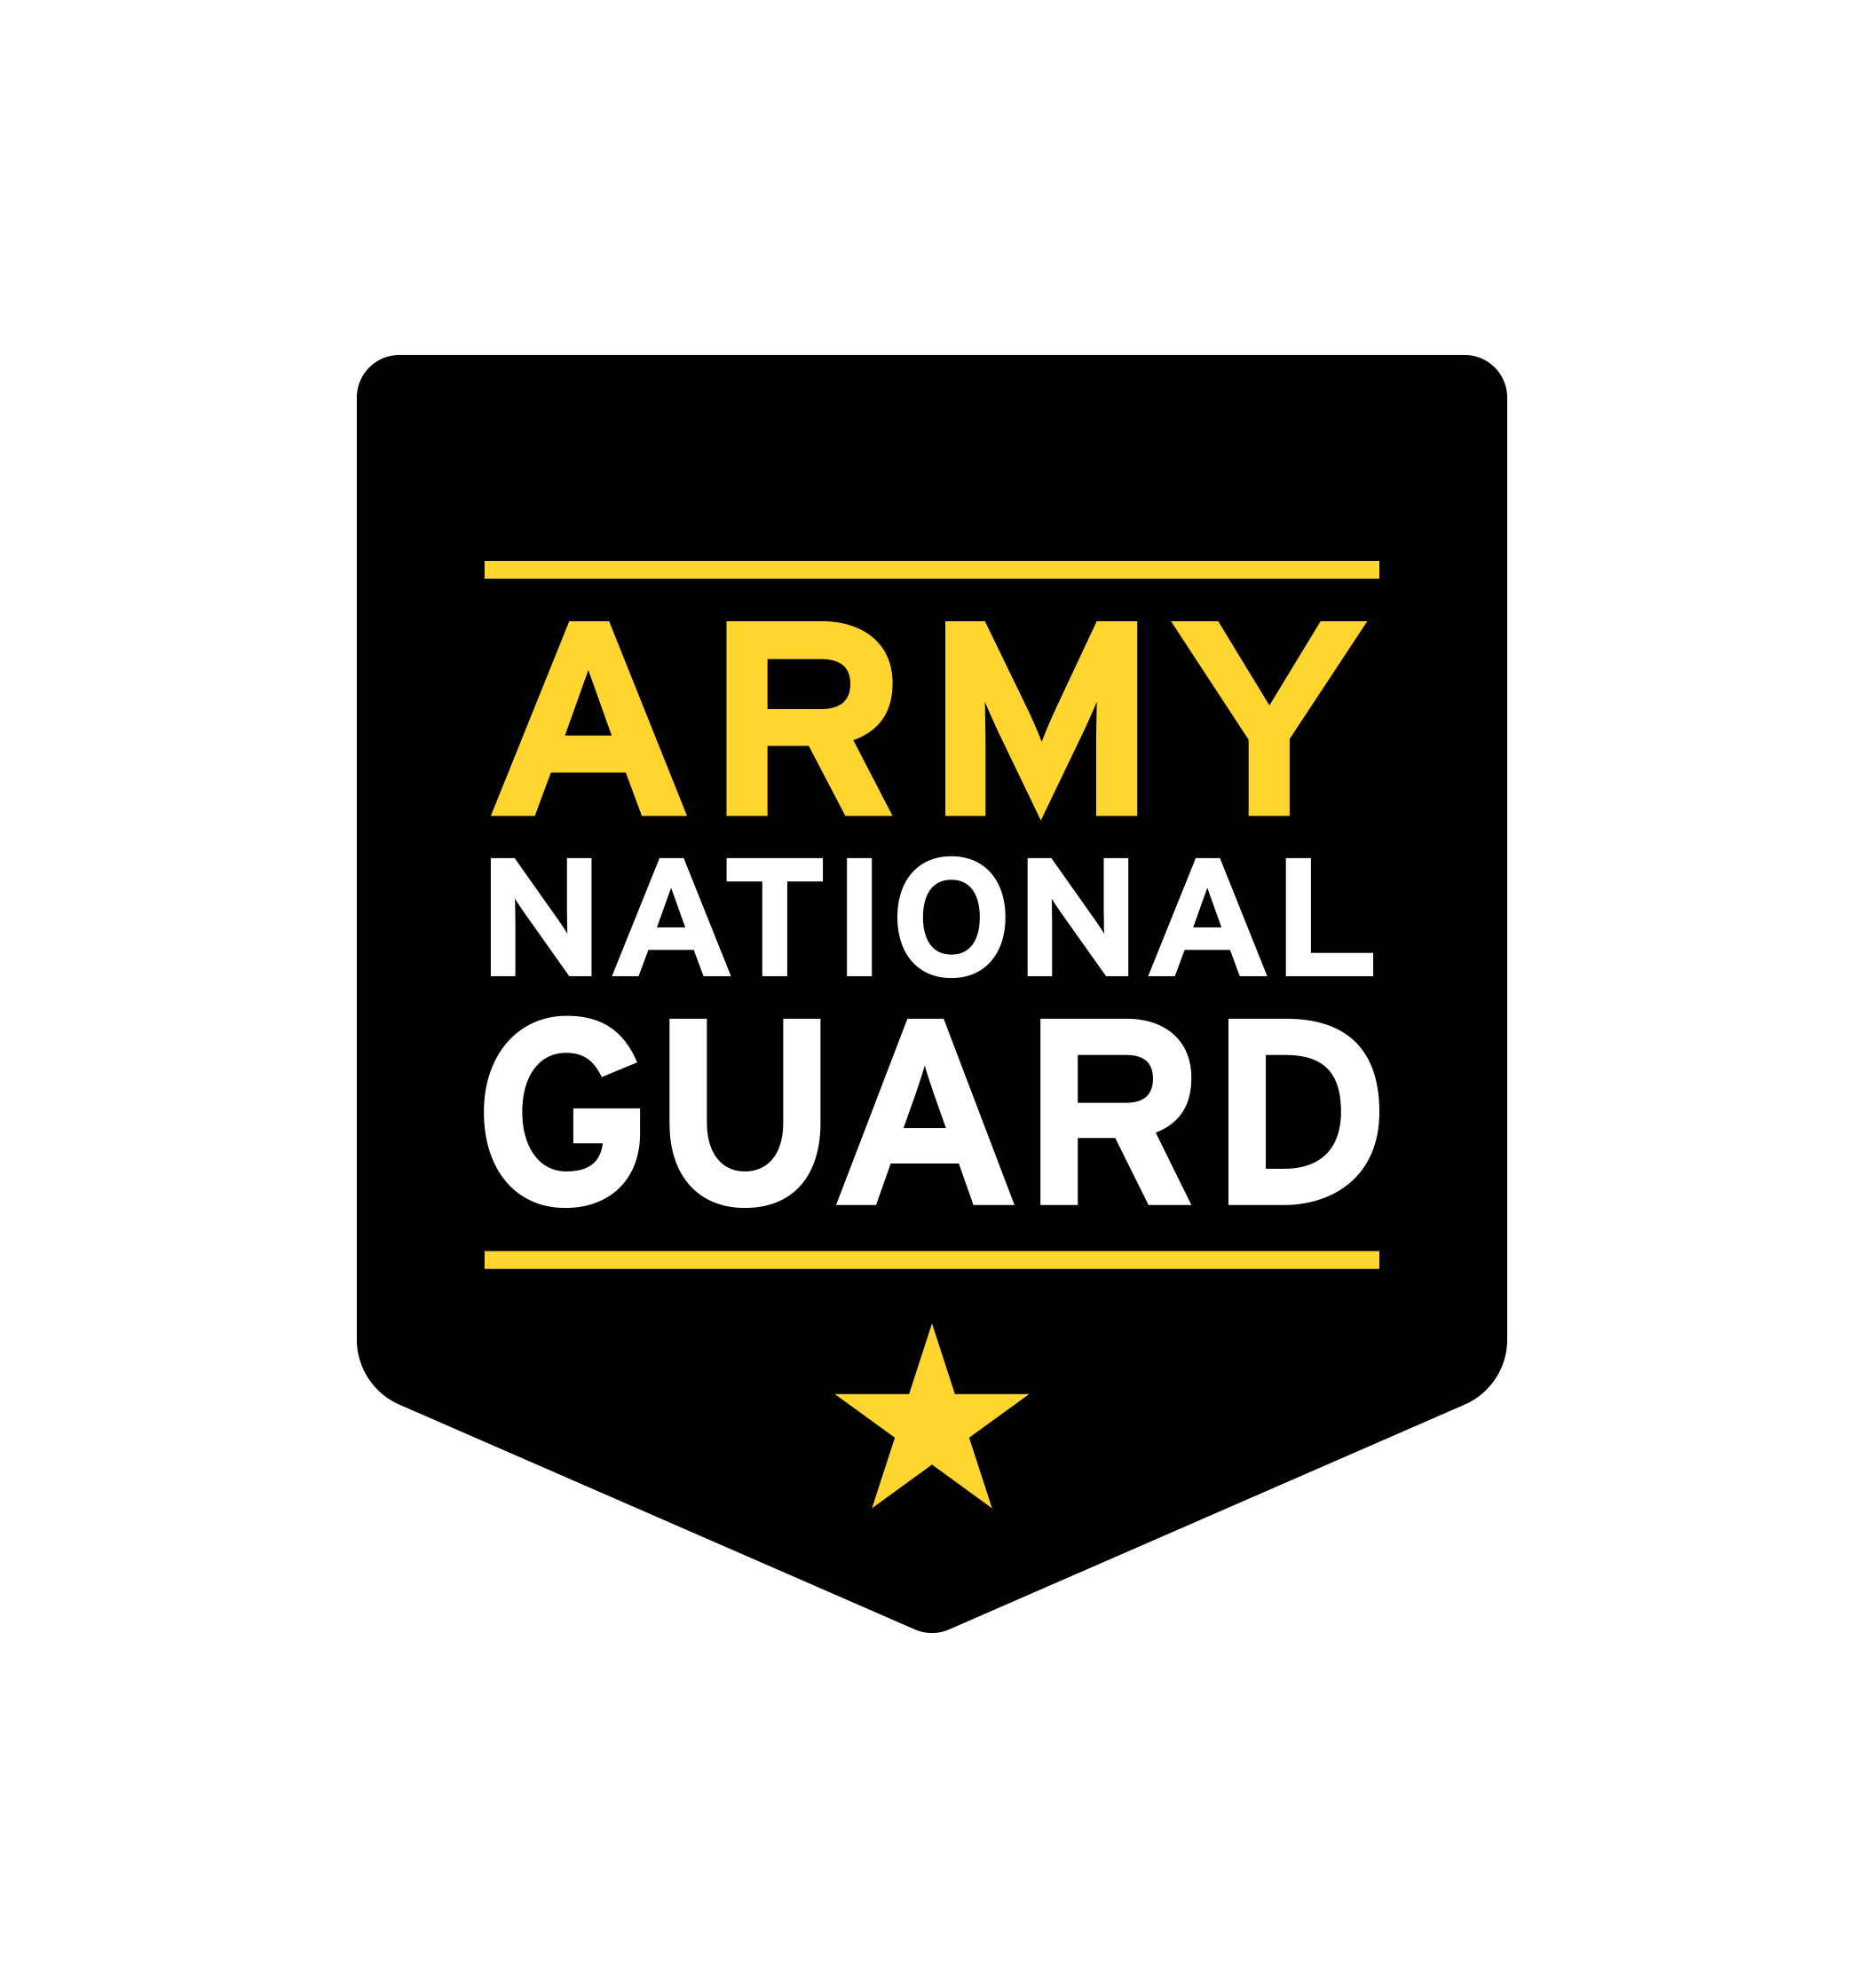 Army National Guard Marketing Logo